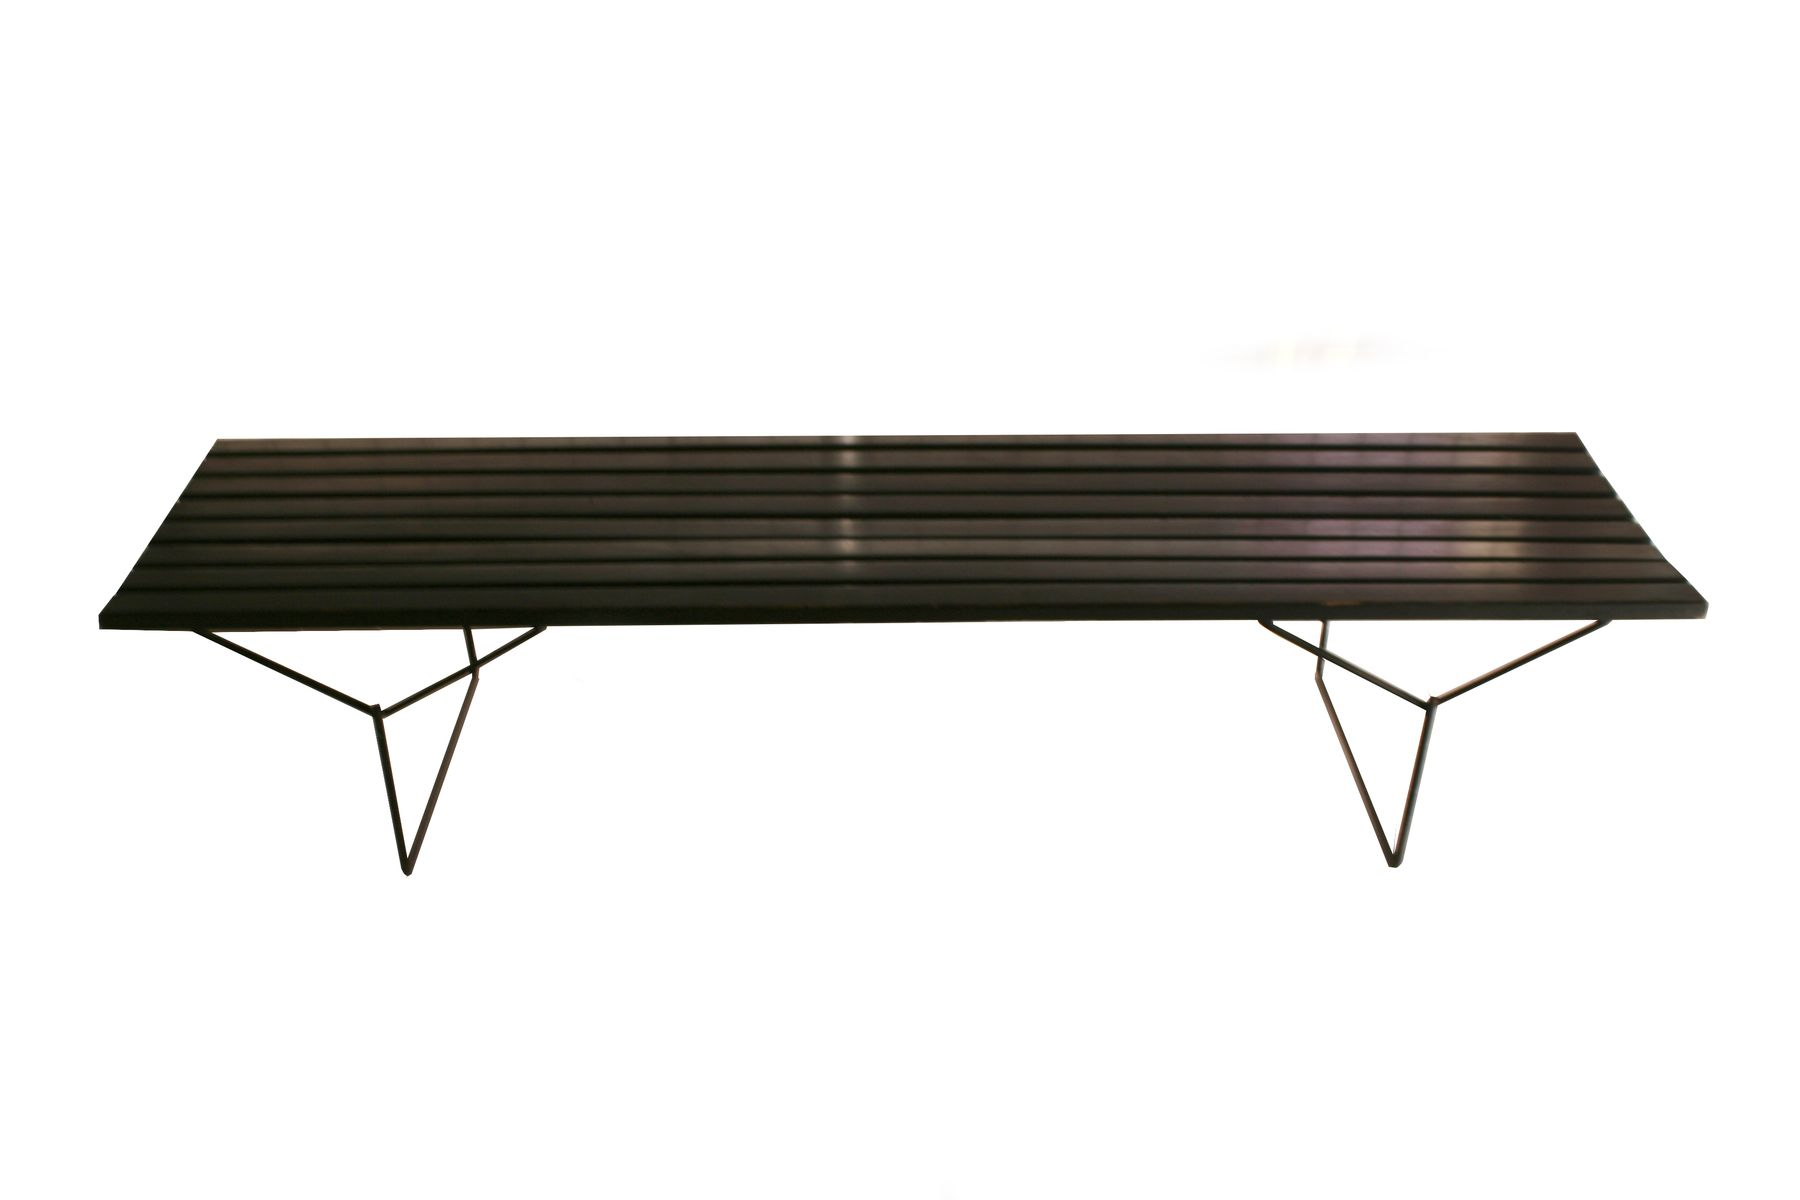 banc lacqu noir par harry bertoia pour knoll 1950 en vente sur pamono. Black Bedroom Furniture Sets. Home Design Ideas